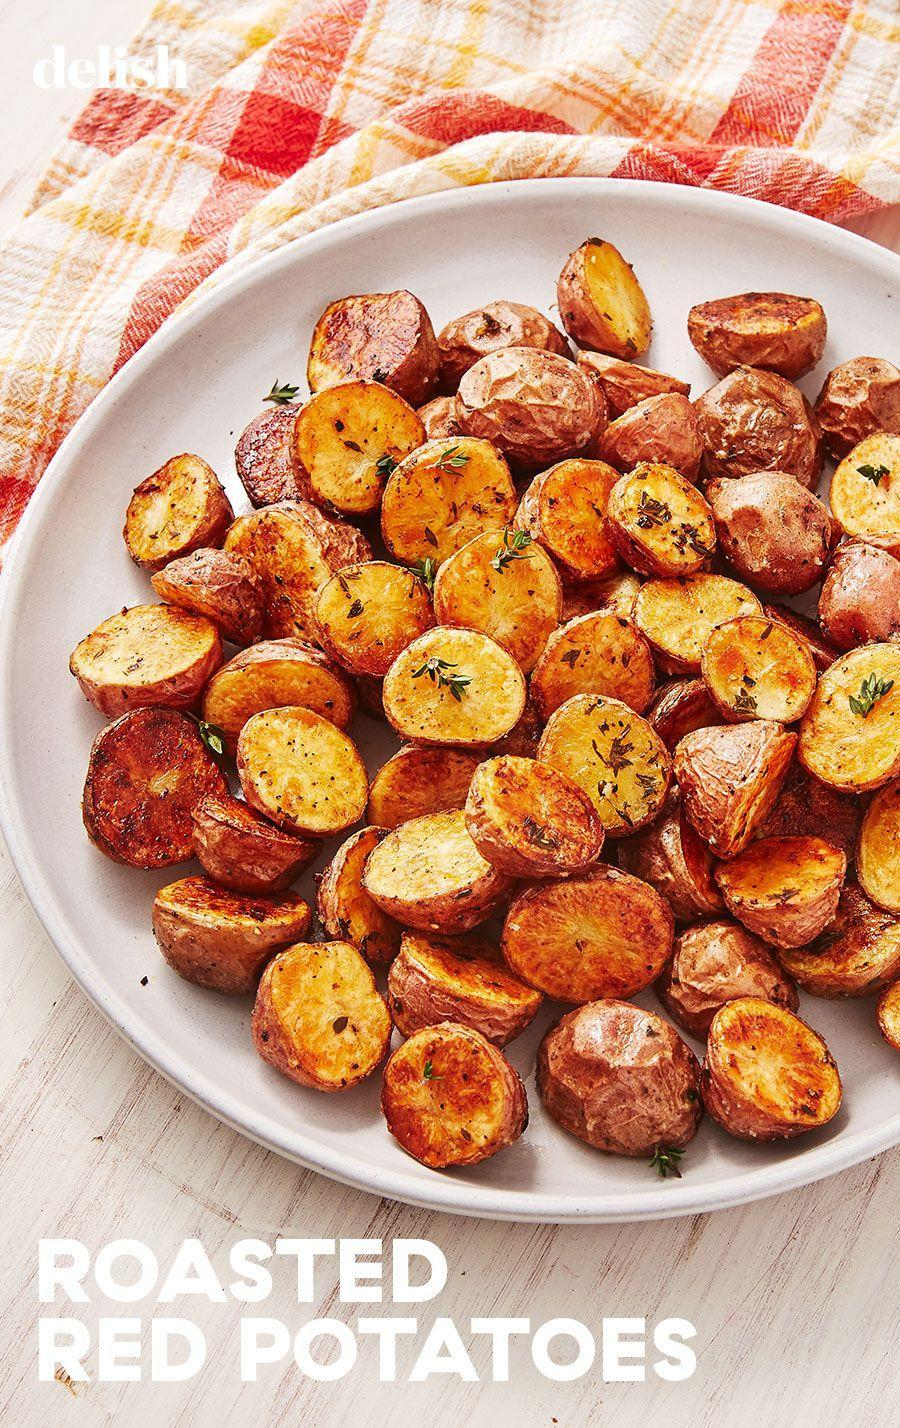 """<p>Golden and crisp potatoes are possible with this recipe.</p><p>Get the recipe from <a href=""""https://www.delish.com/cooking/recipe-ideas/a29787990/roasted-red-potatoes-recipe/"""" rel=""""nofollow noopener"""" target=""""_blank"""" data-ylk=""""slk:Delish"""" class=""""link rapid-noclick-resp"""">Delish</a>.</p>"""